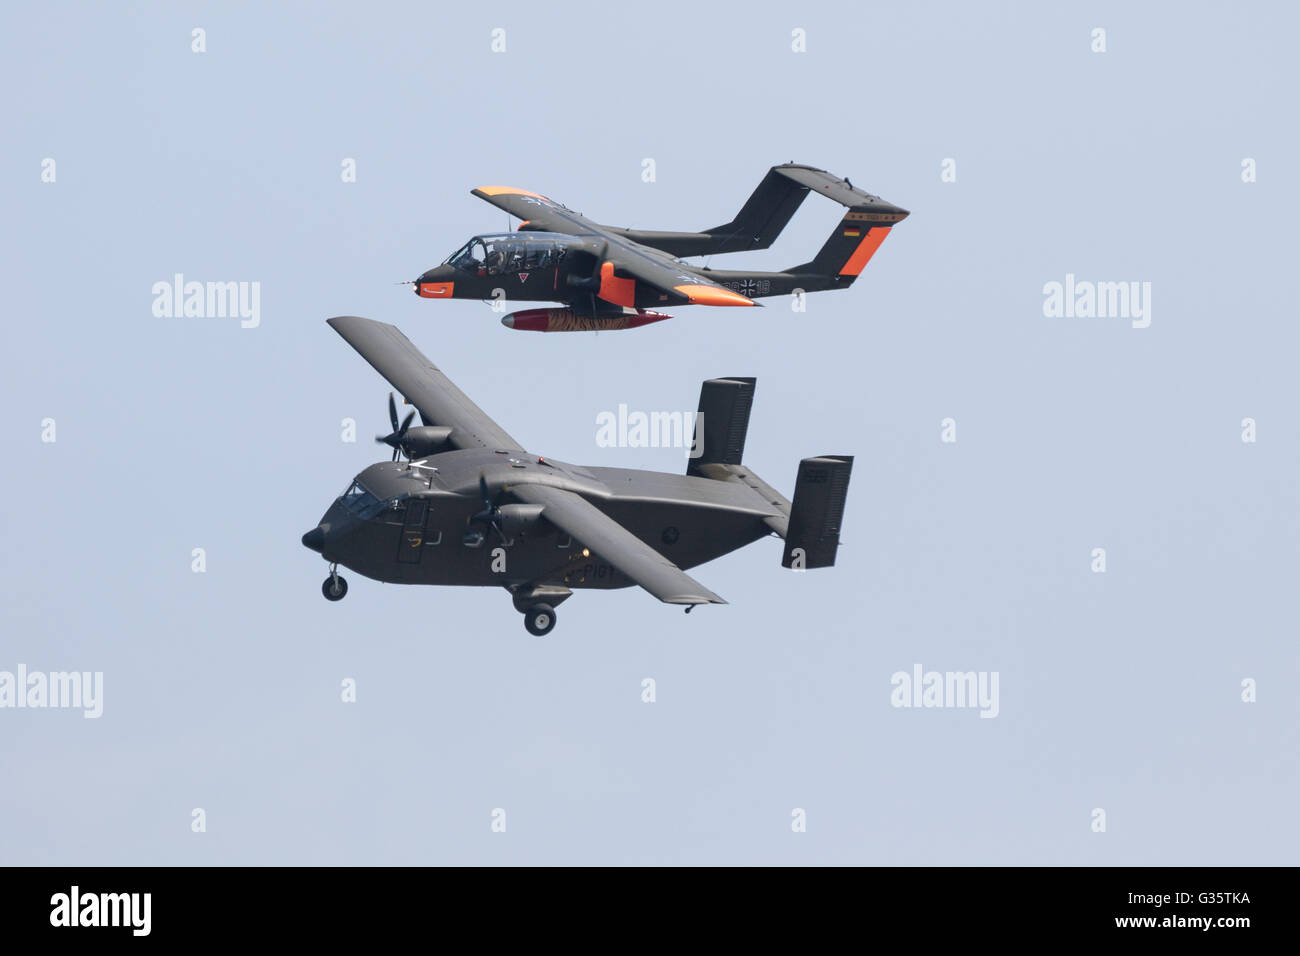 A Short SC-7 Skyvan and a North American OV-10 Bronco plane flying at Duxford American airshow, Duxford UK - Stock Image